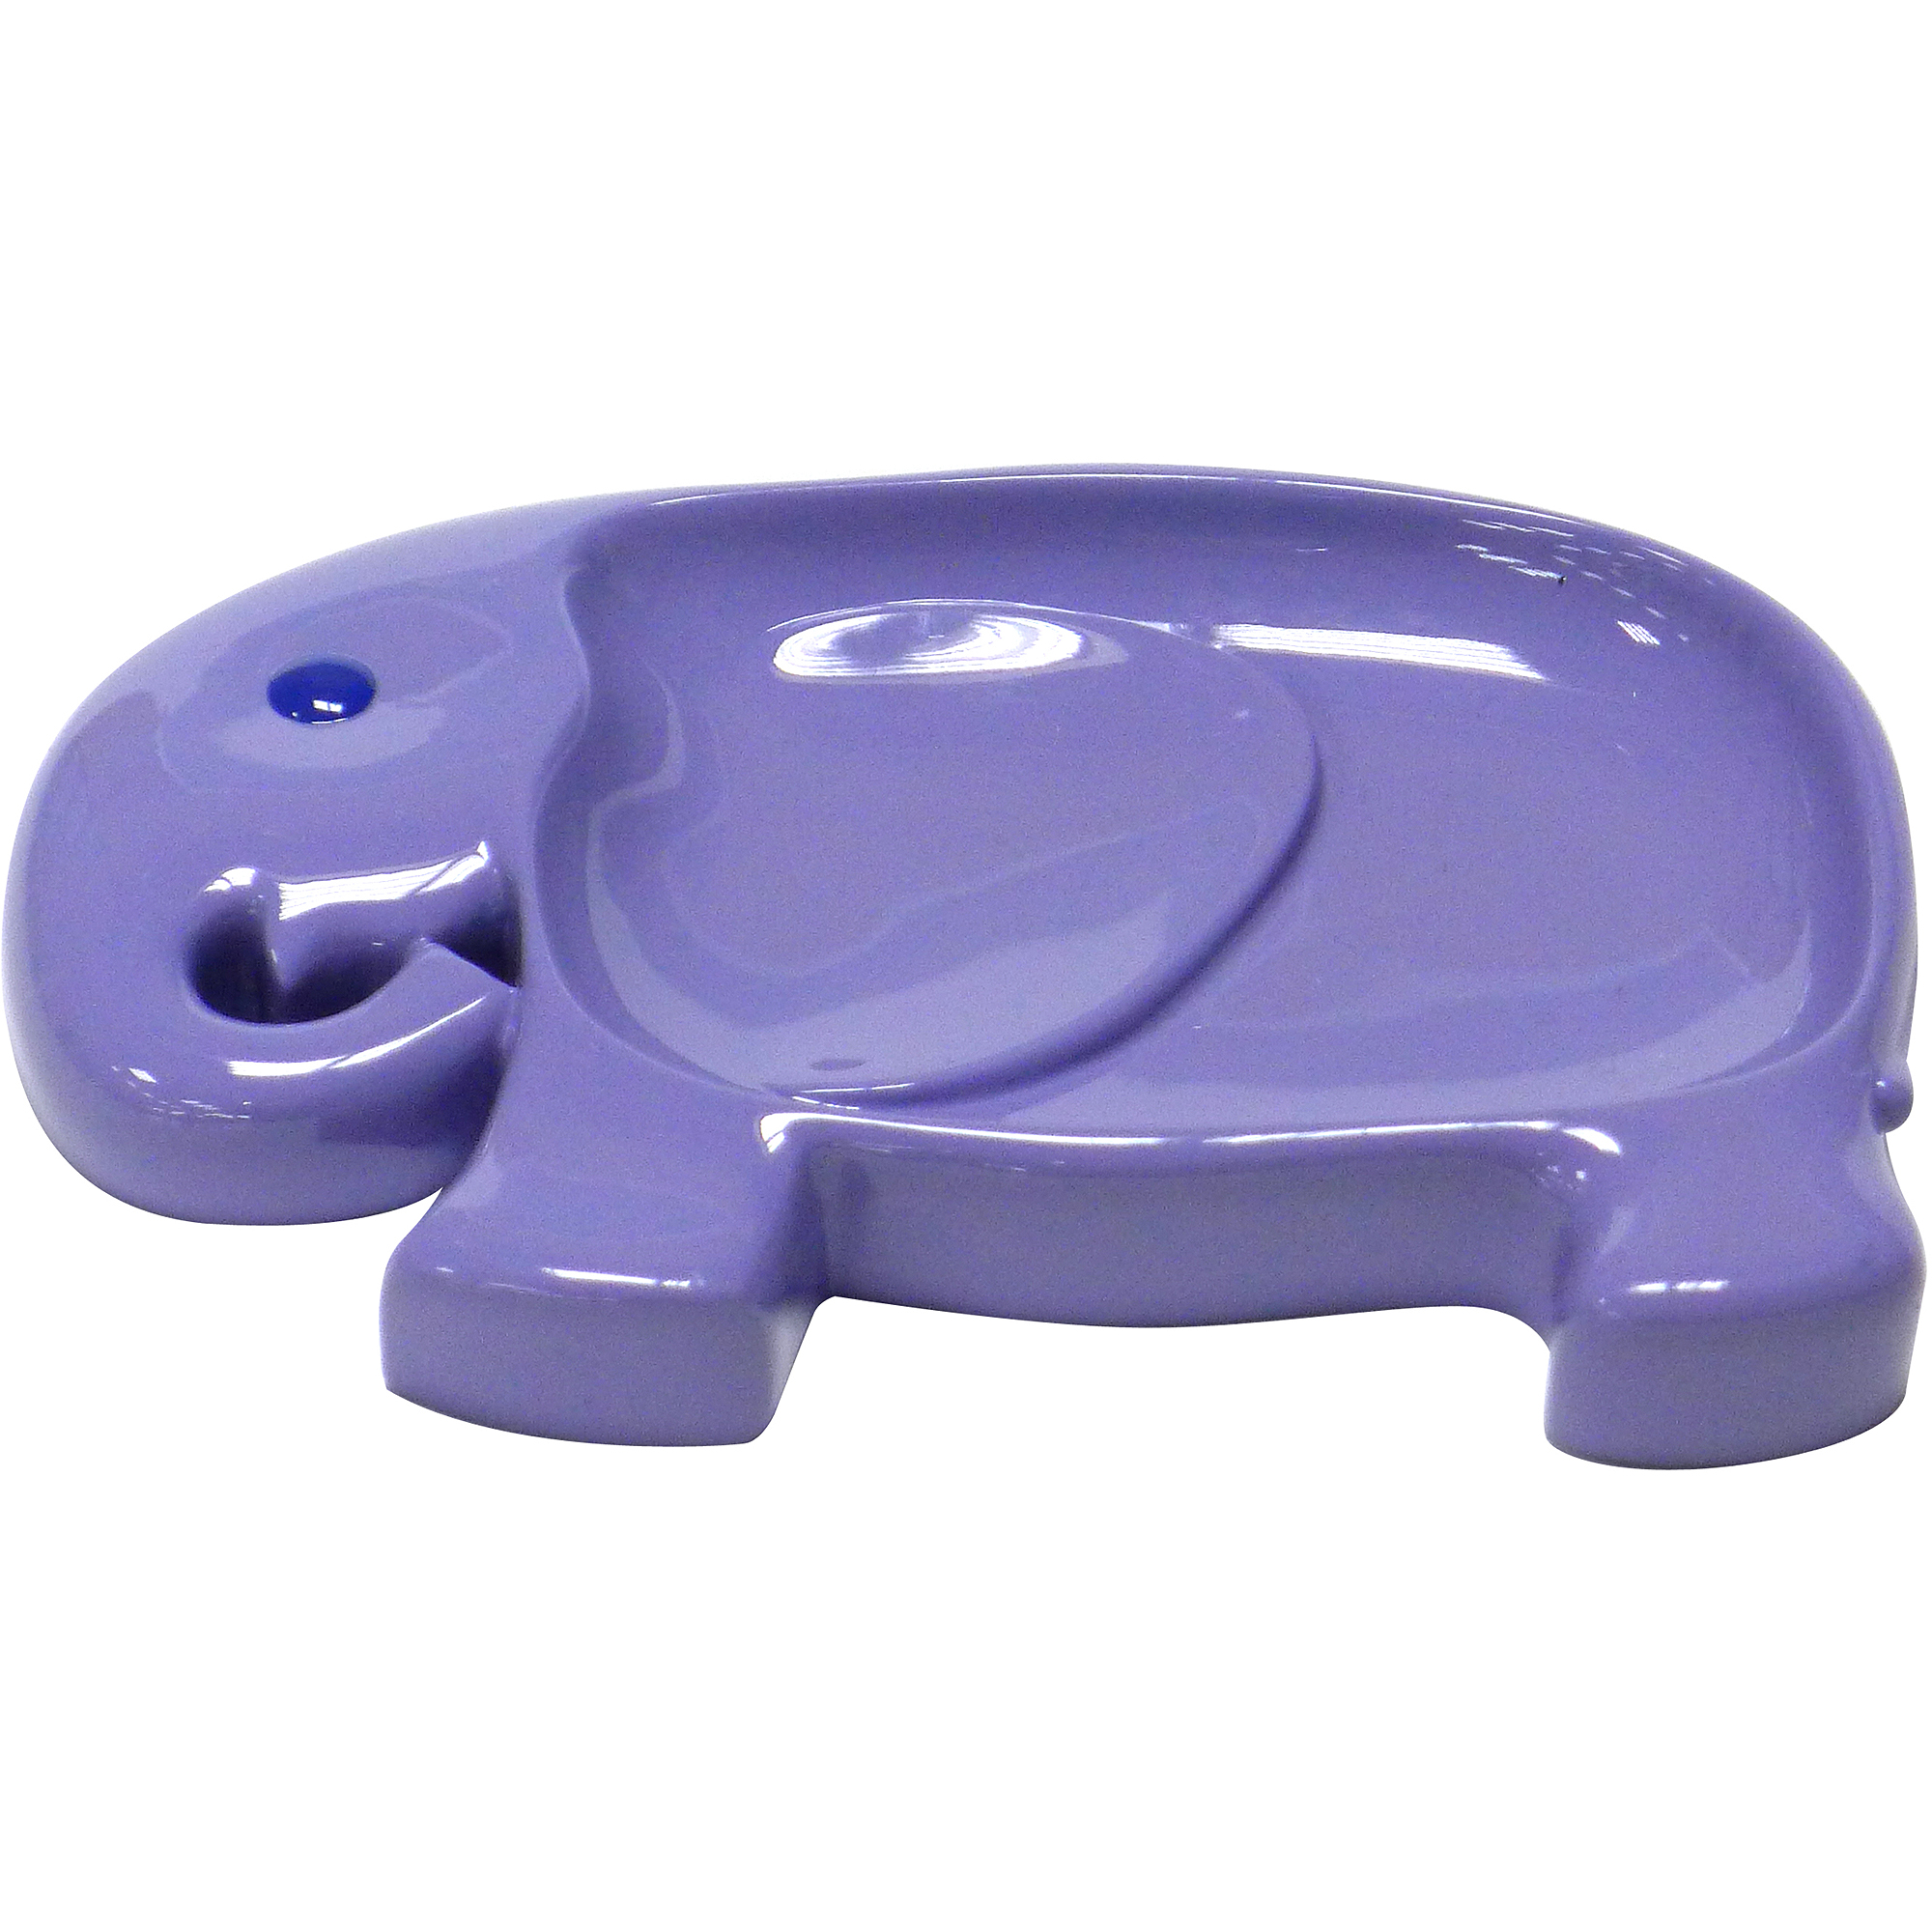 Hippo Bath Collection by Allure Home Creation, items sold separately